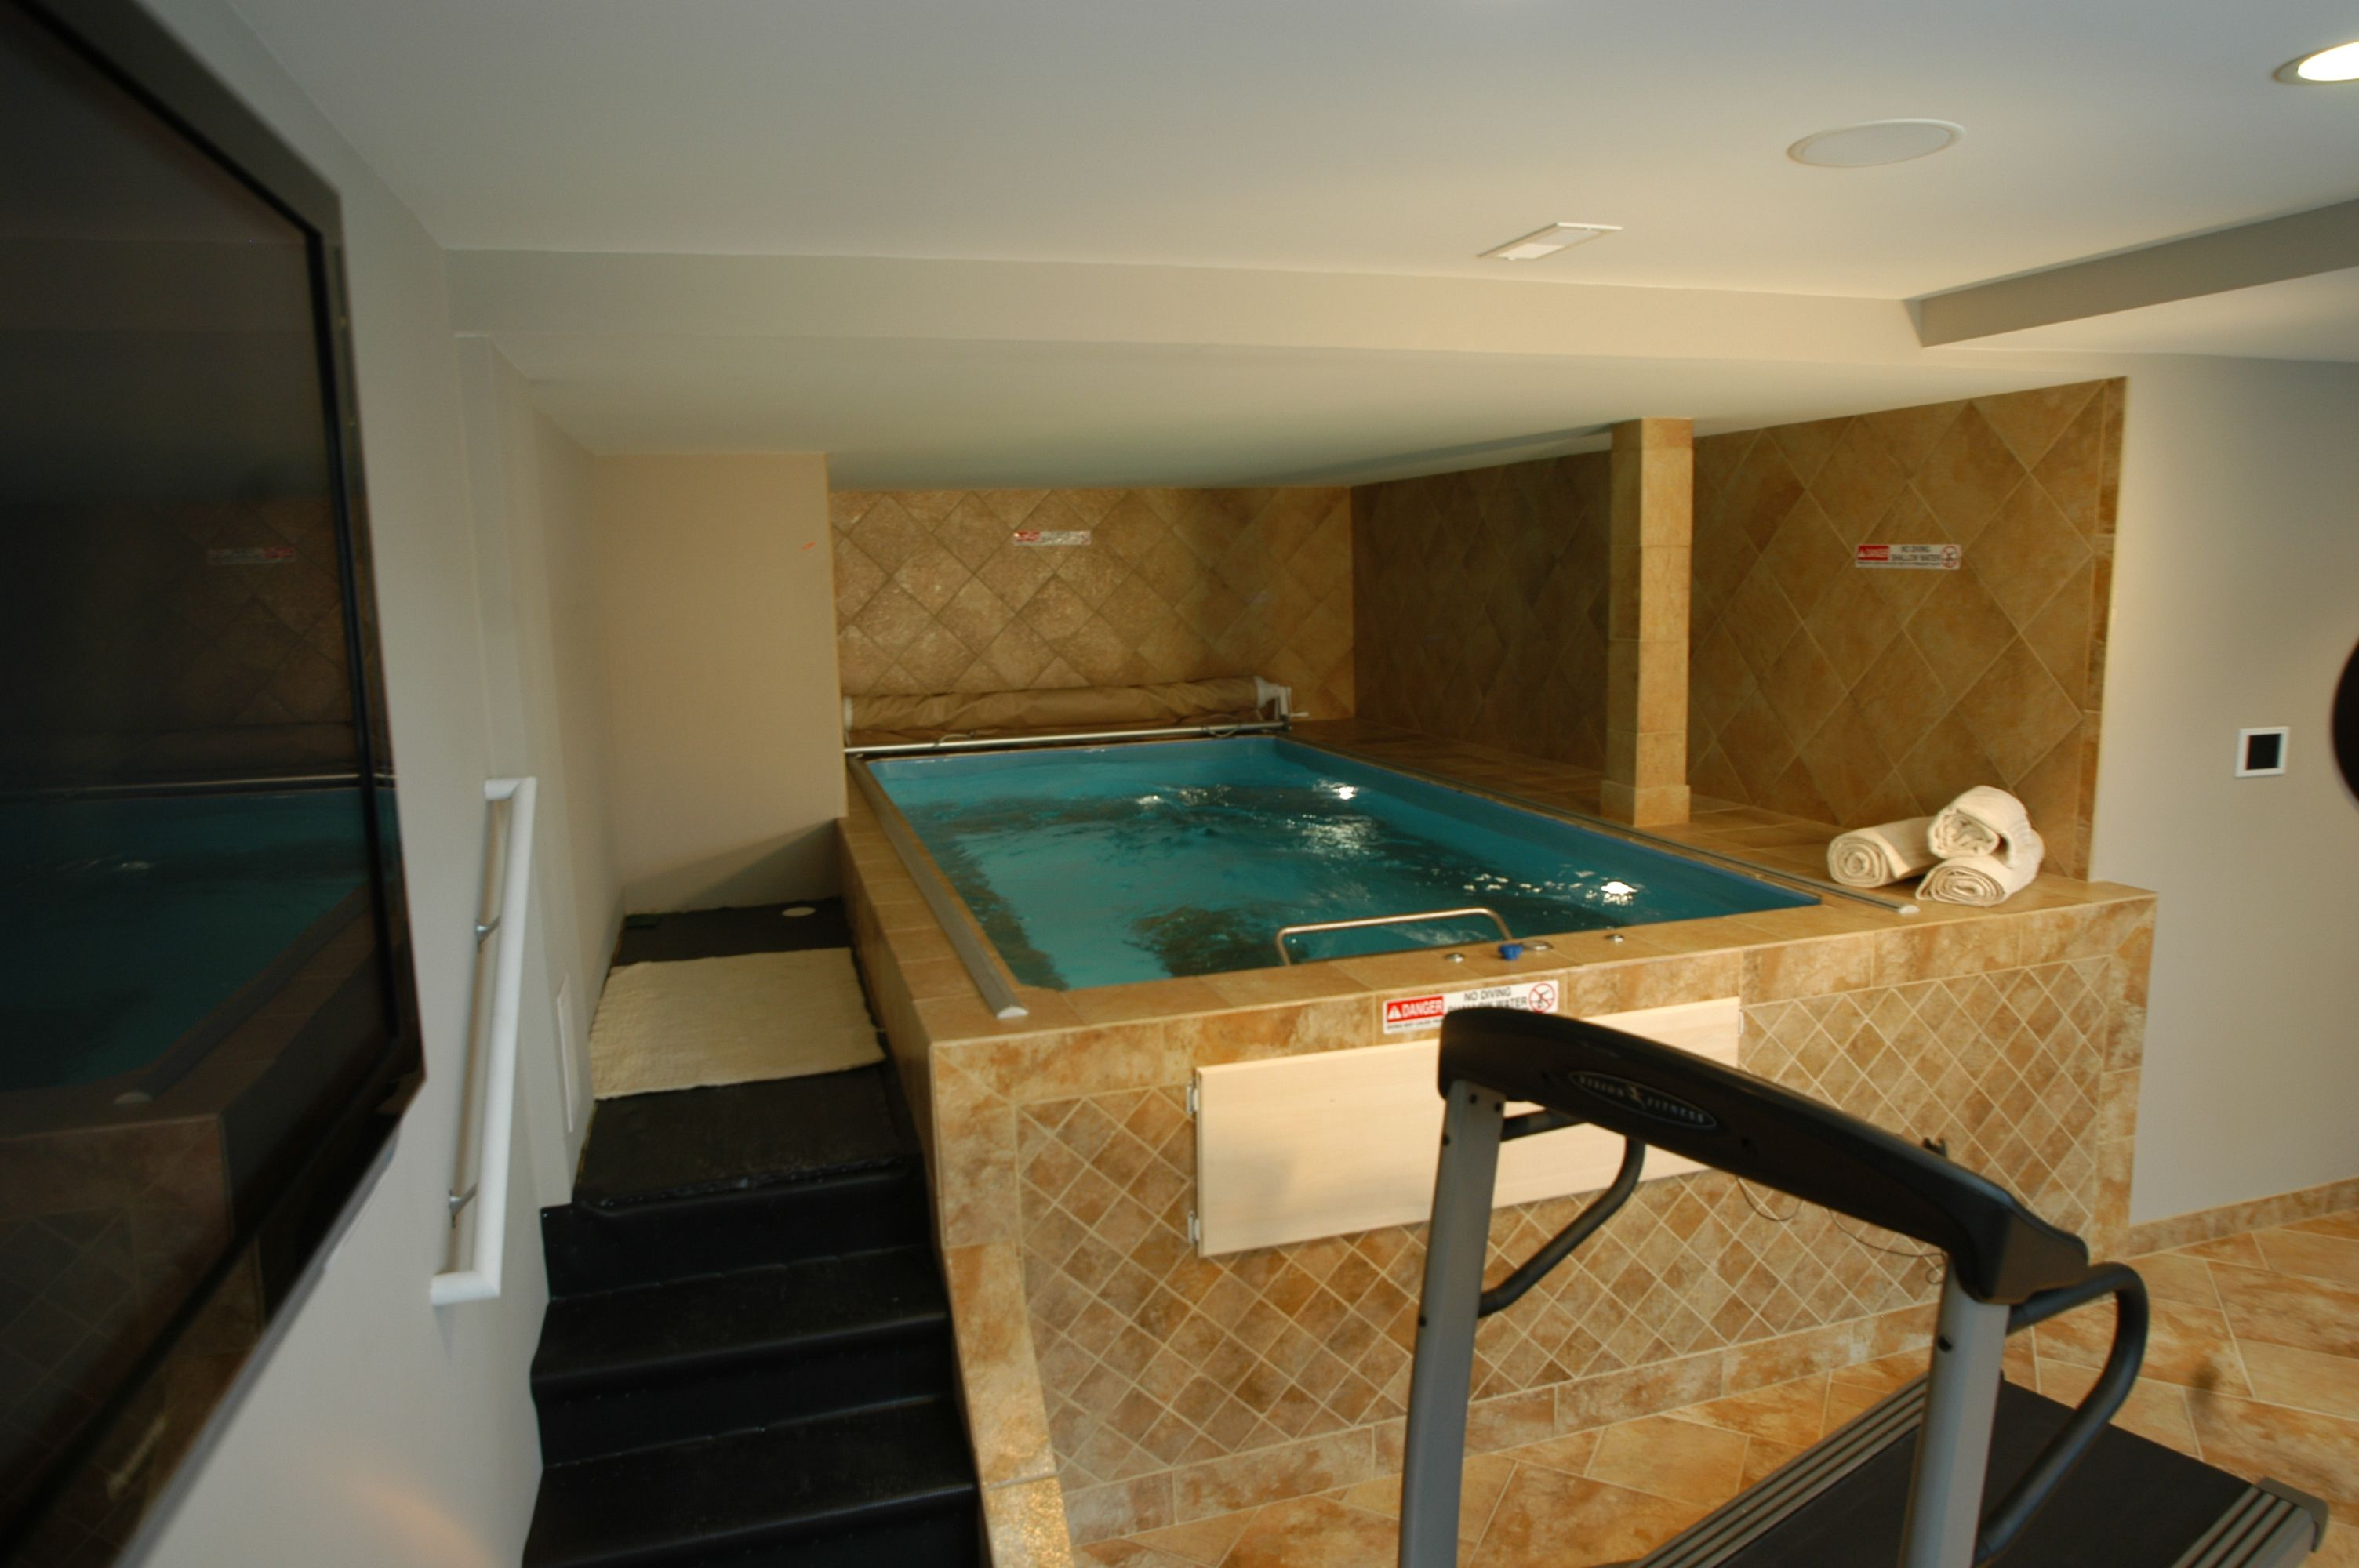 Indoor Hot Tub Located In The Basement Finishing Basement Indoor Hot Tub Basement Design